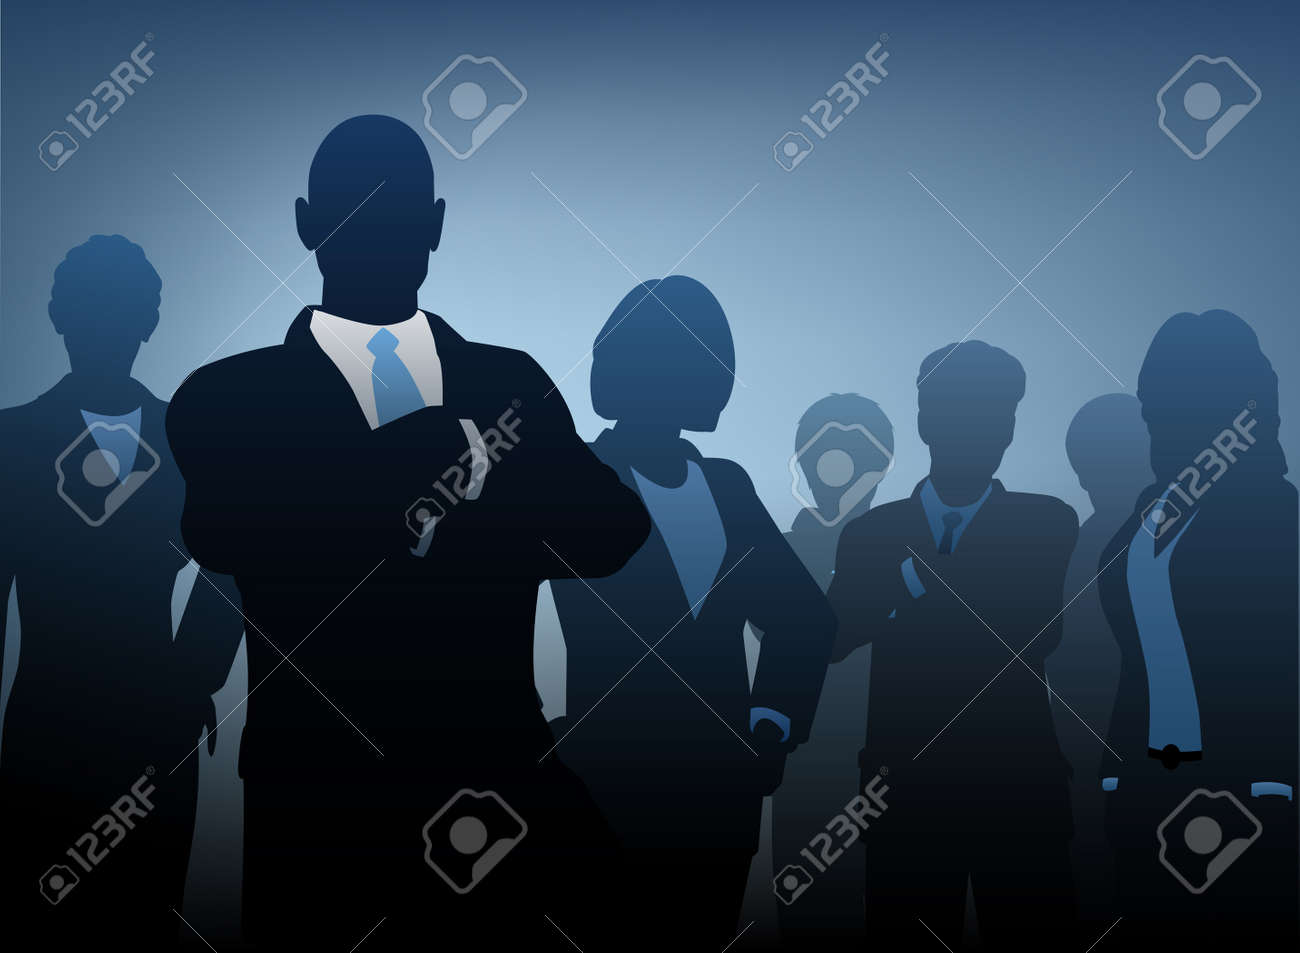 silhouettes of a business team Stock Vector - 9284484